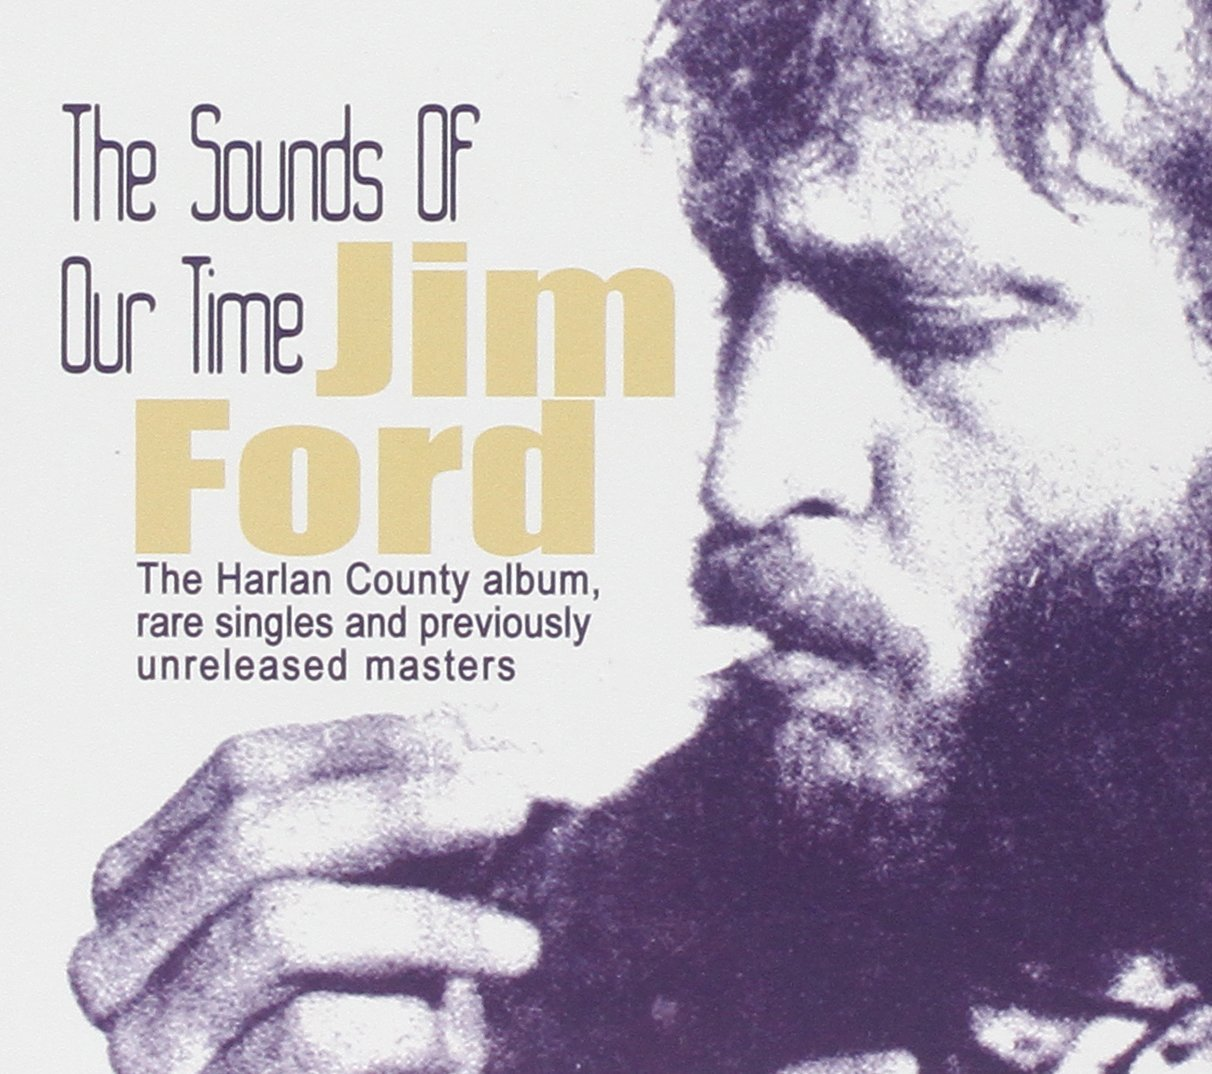 Jim ford the sounds of